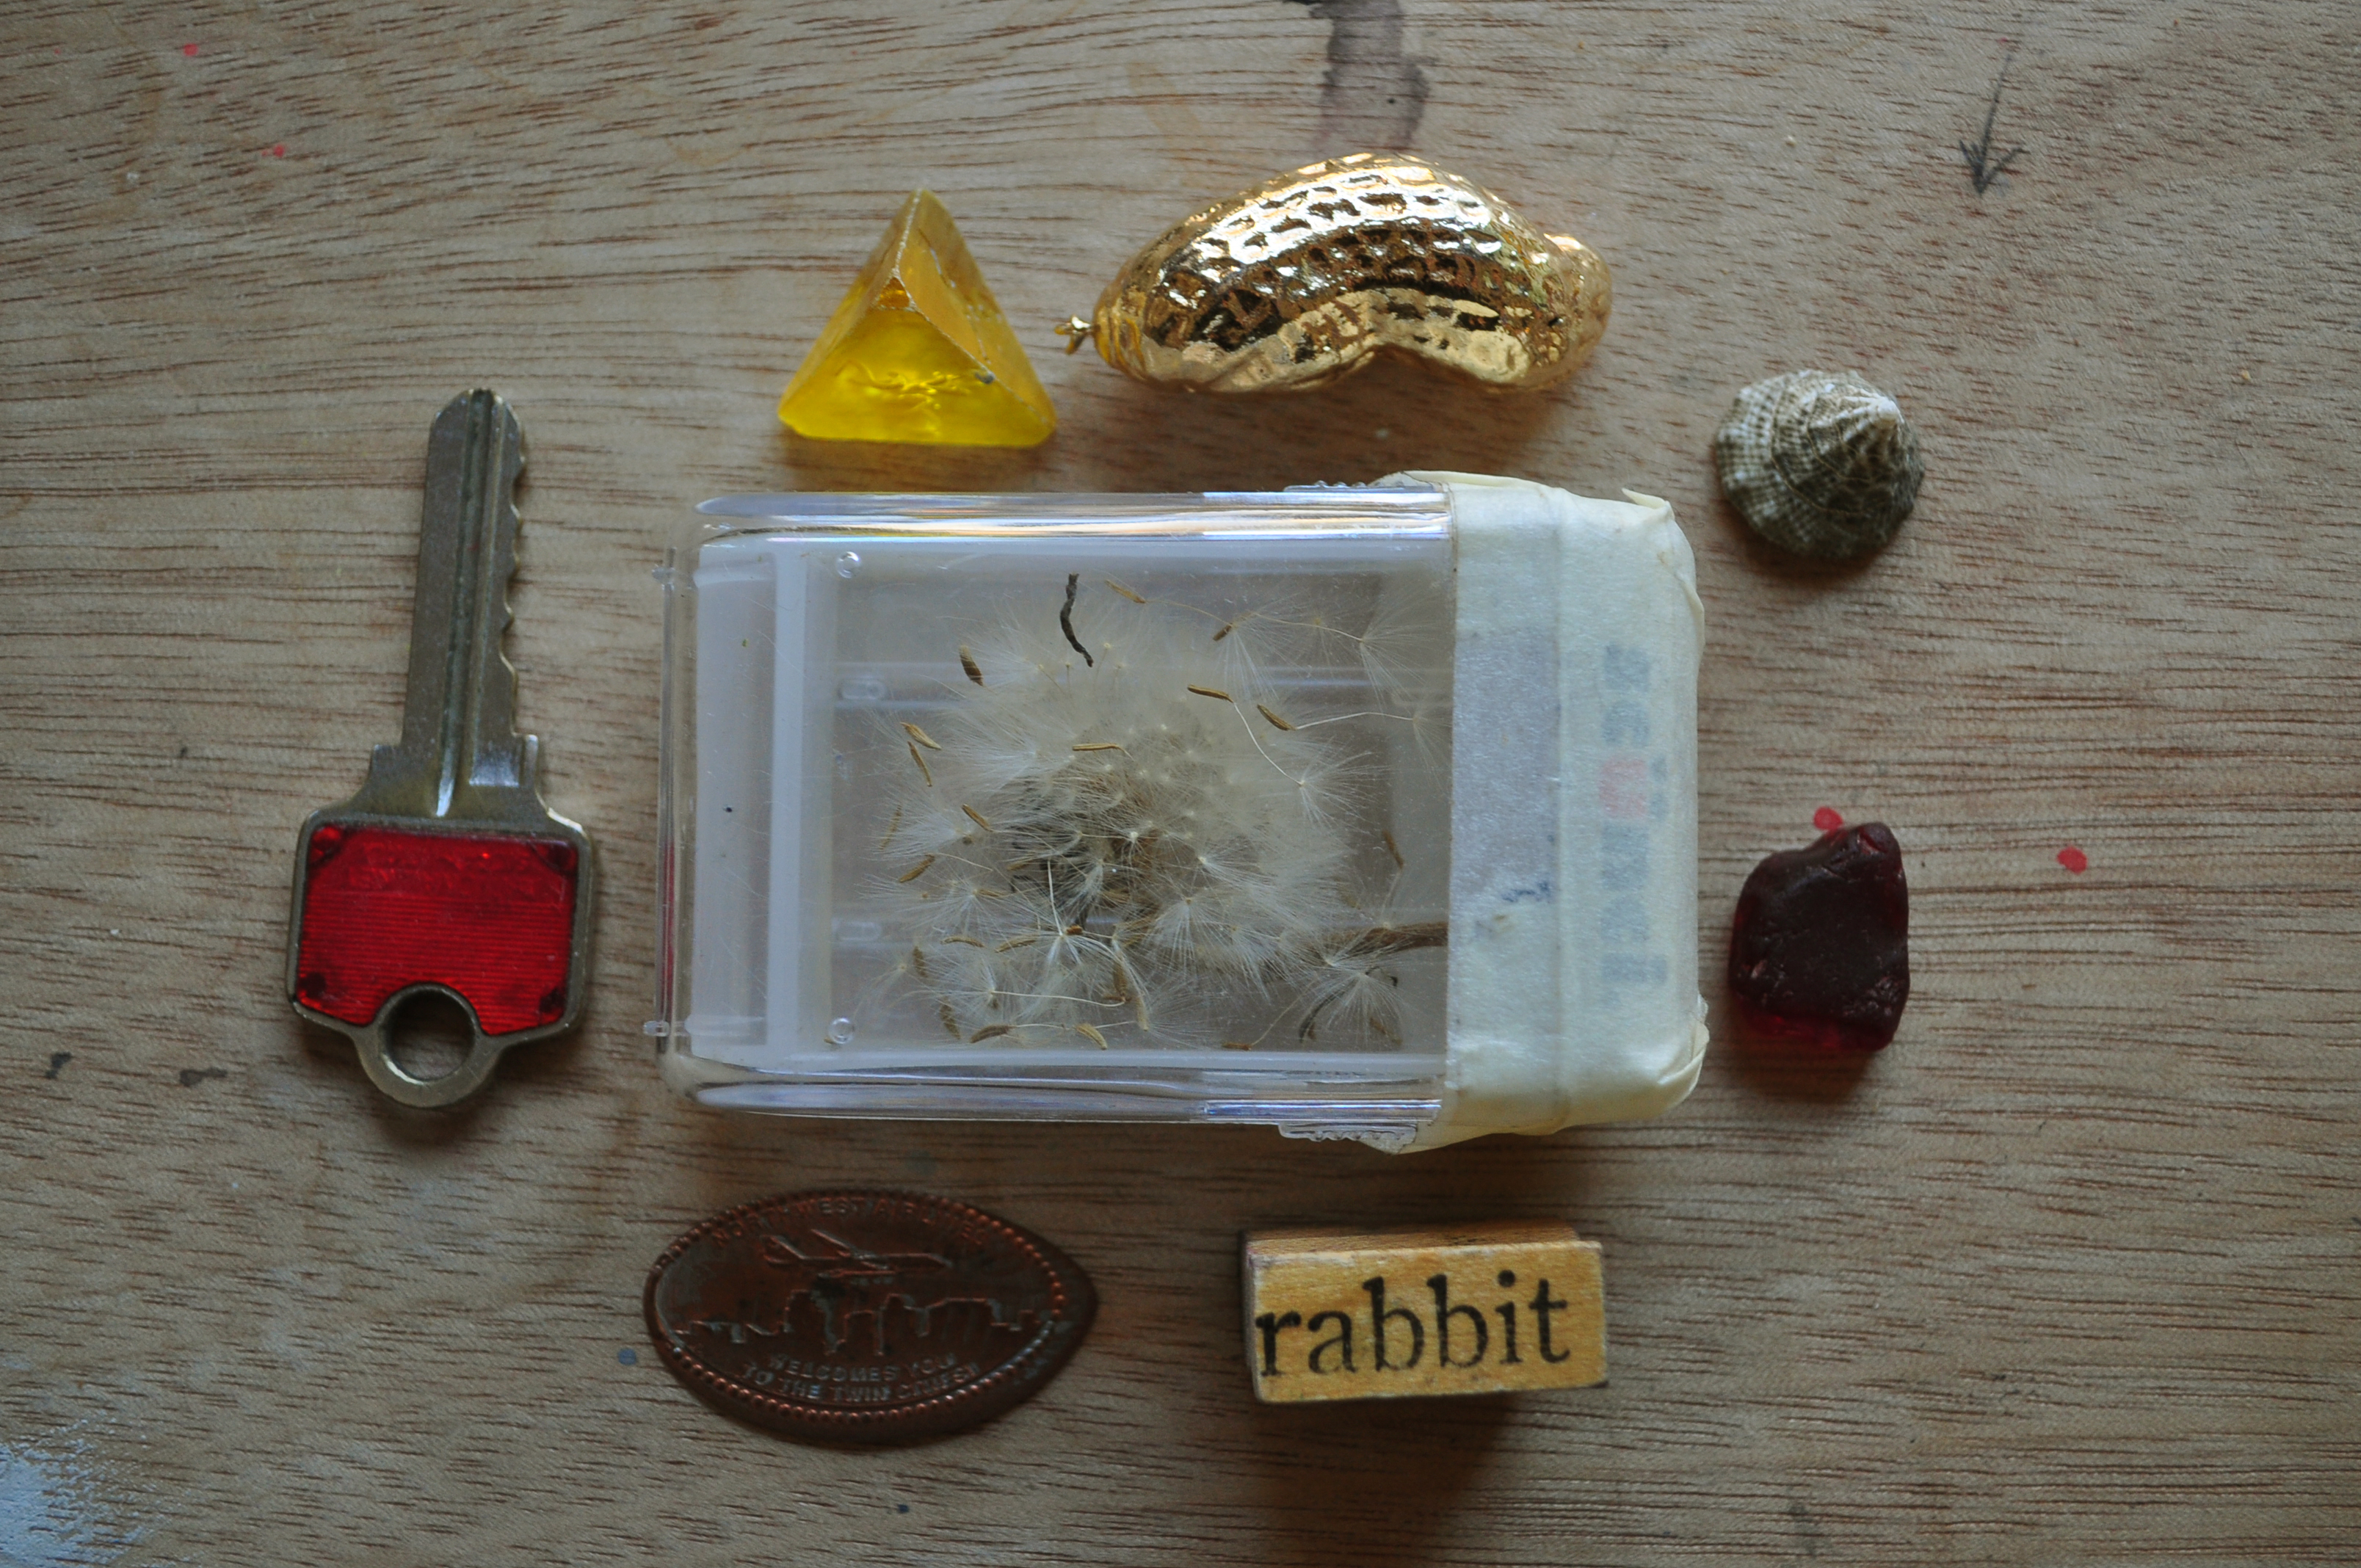 Collected objects of Caitlin Duennebier